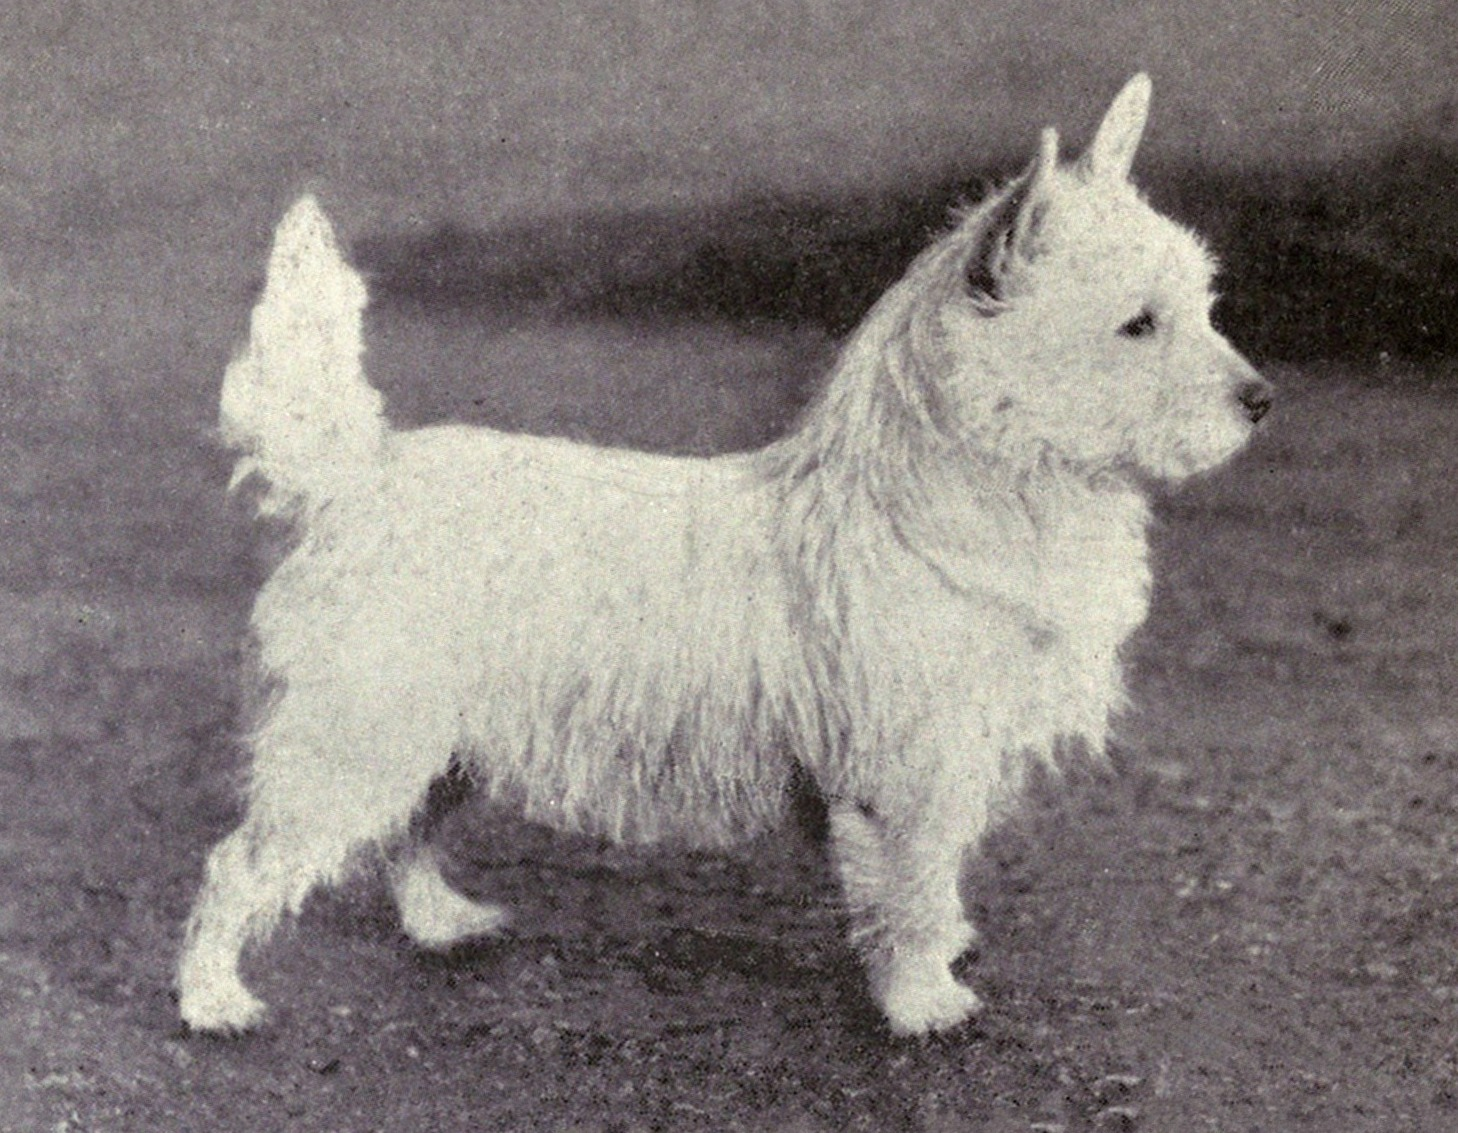 A black and white photograph of a small white terrier, looking very similar to the modern breed